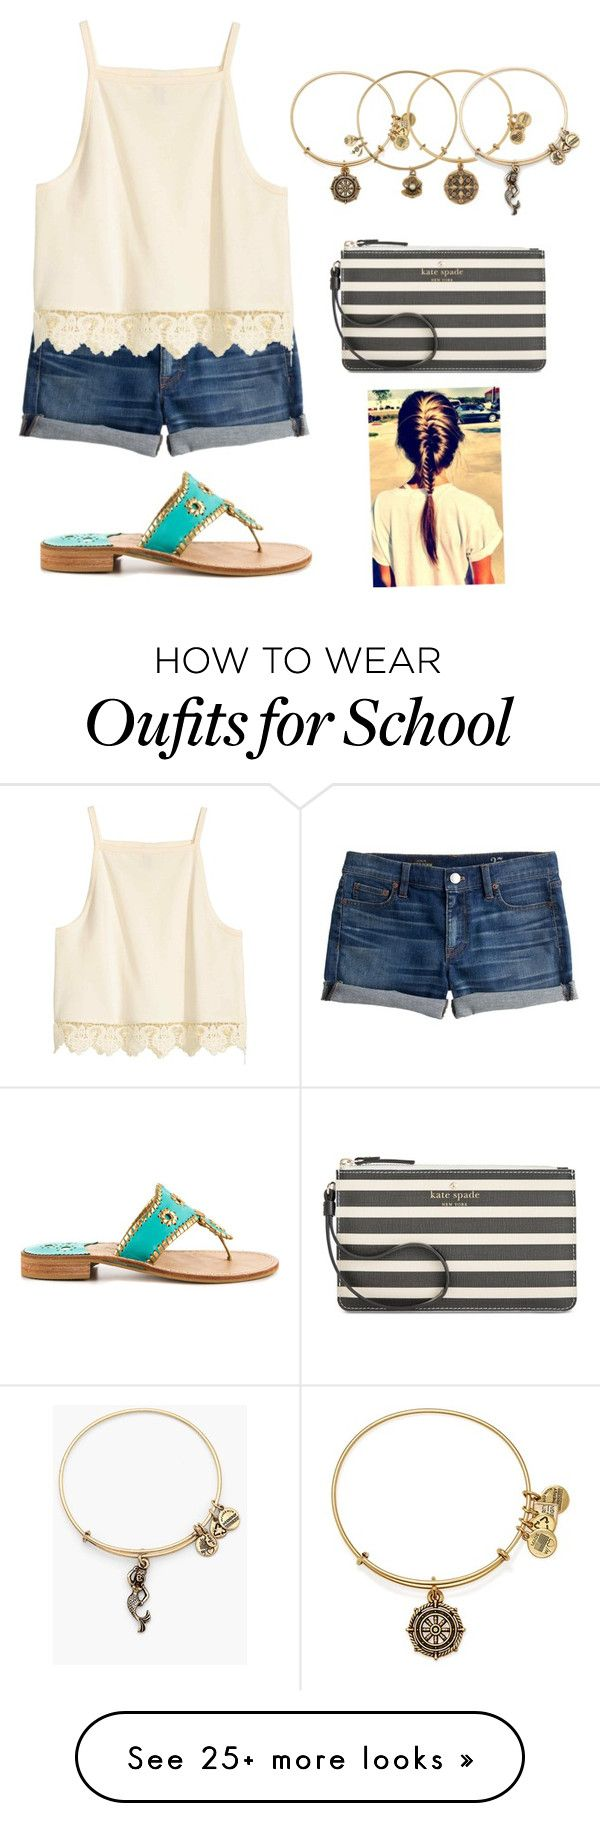 """Going to school! Have a god day everyone"" by pandapeeper on Polyvore featuring J.Crew, Alex and Ani, Jack Rogers and Kate Spade"